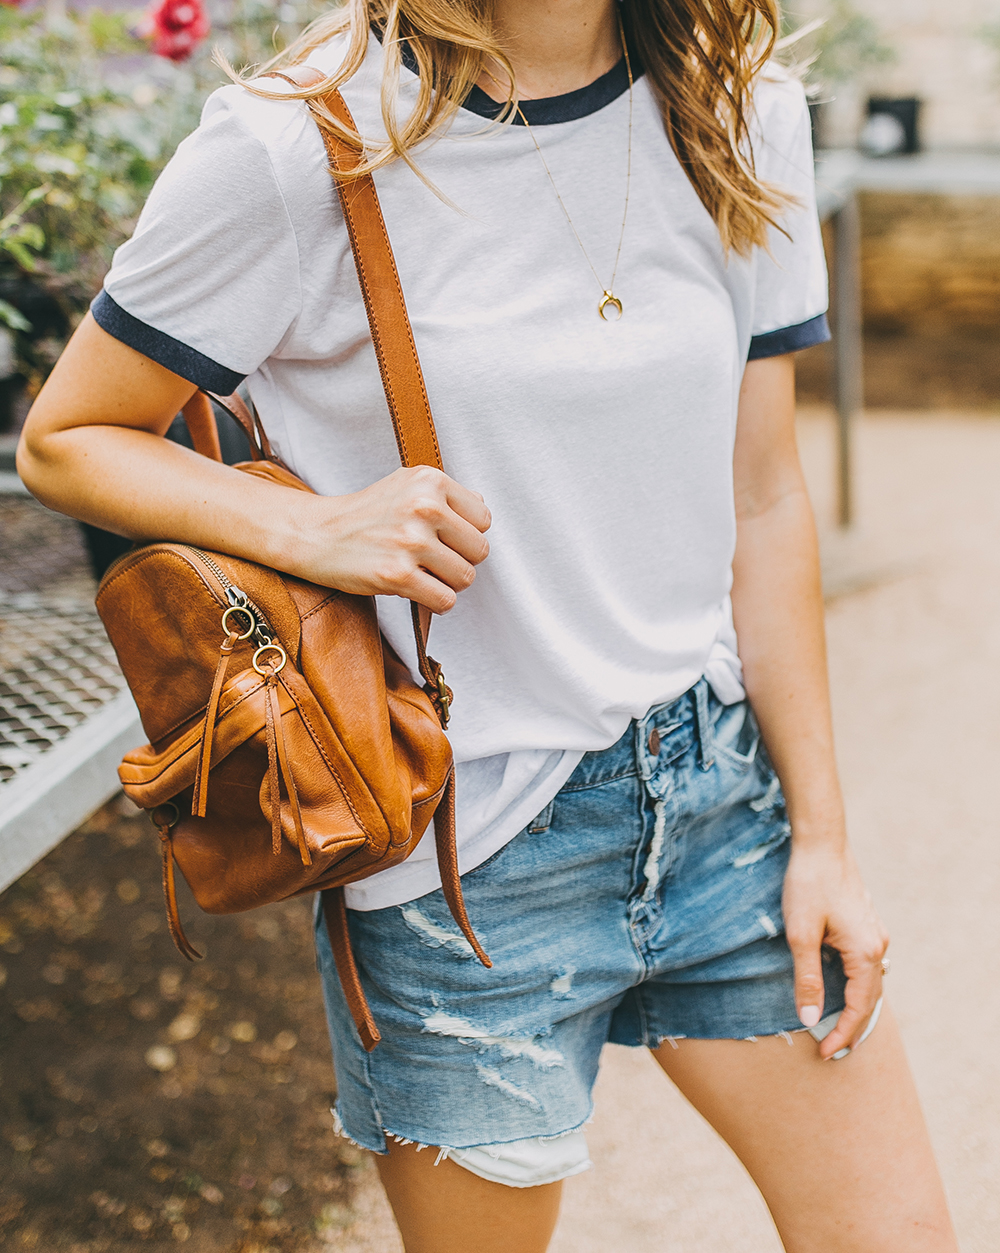 livvyland-blog-olivia-watson-austin-texas-fashion-blogger-natural-gardener-tee-boyfriend-shorts-denim-cutoffs-madewell-mini-lorimer-backpack-treasure-bond-nordstrom-6